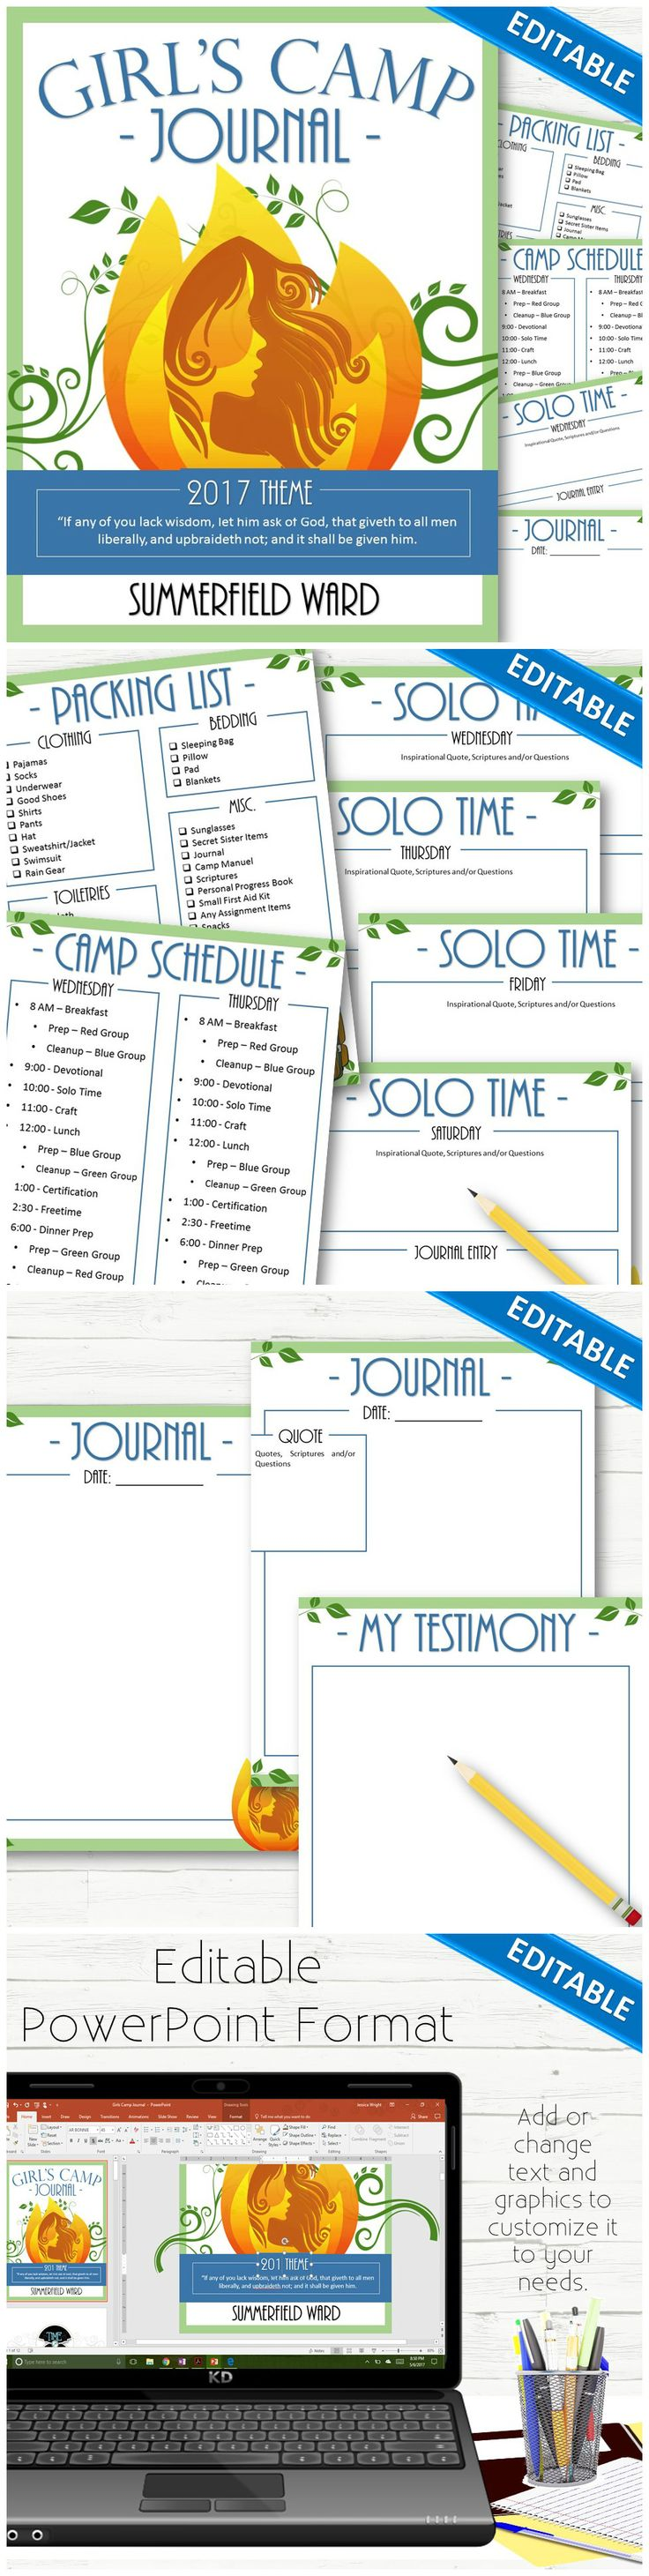 A completely editable Young Women Girls Camp book! Comes in fillable PDF format AND a PowerPoint format so you can change text, fonts, graphics, etc. to customize it to your own theme and needs.   Contents Include: - Cover - Packing List - Camp Schedule - Solo Time Pages (with an area for quotes, prompts and journaling) - Journaling Pages - Testimony Page